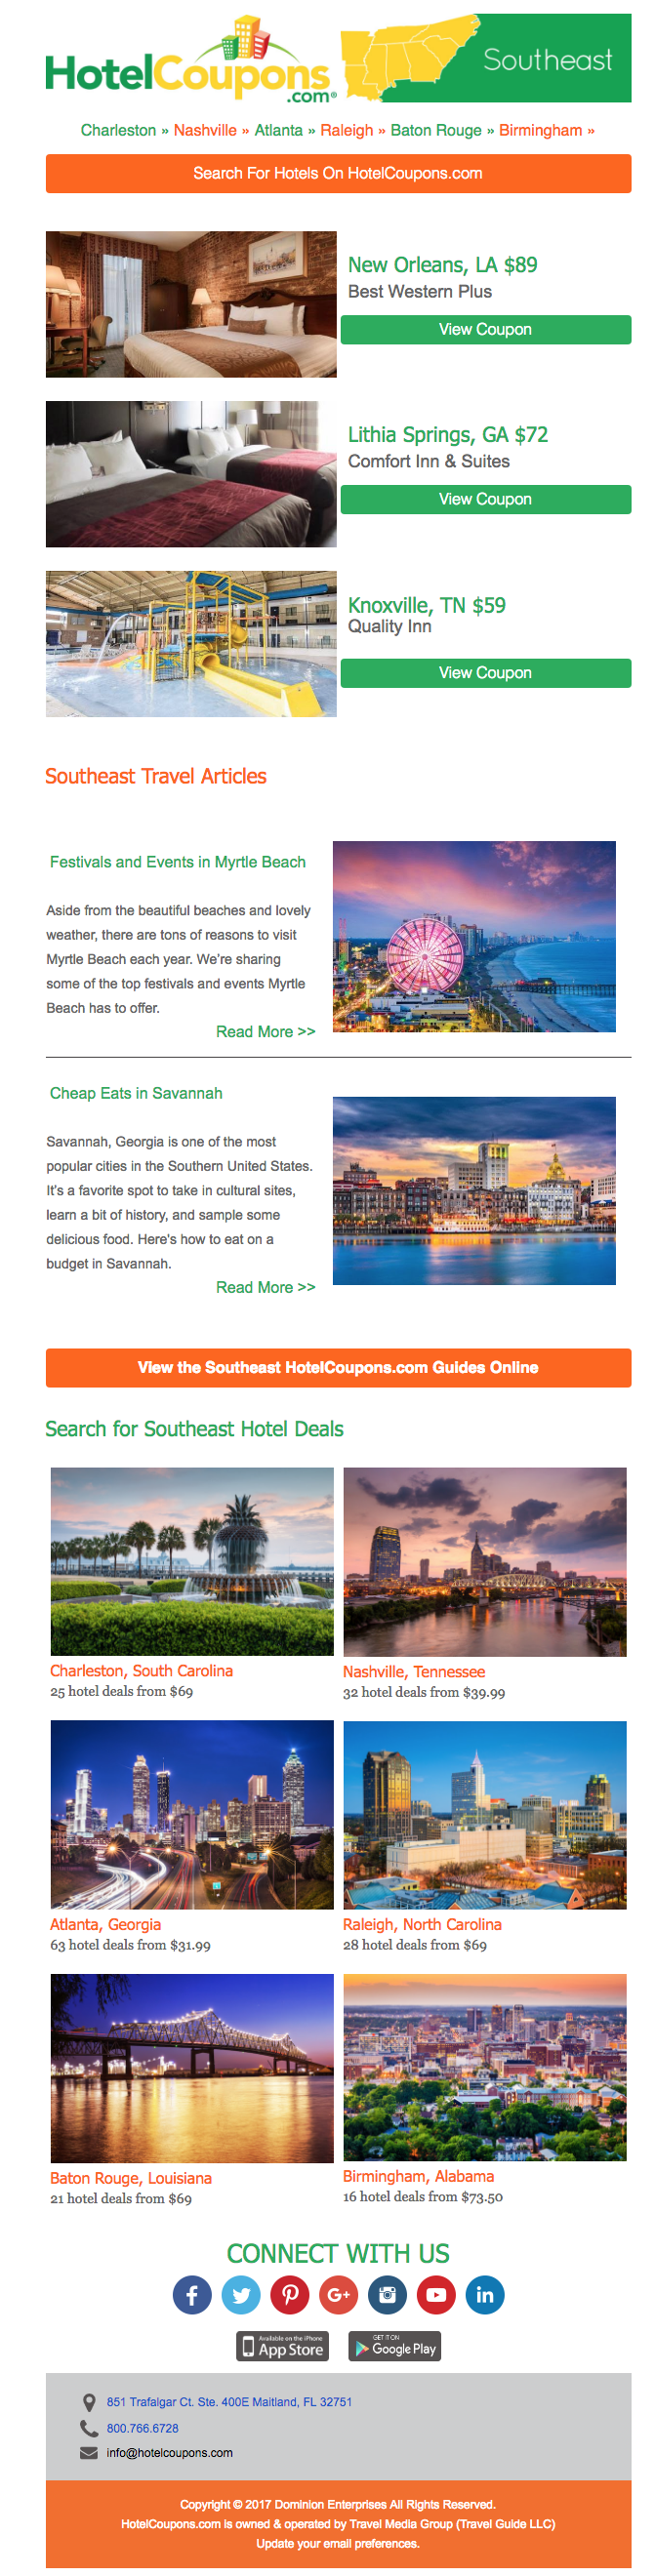 HotelCoupons Regional Email